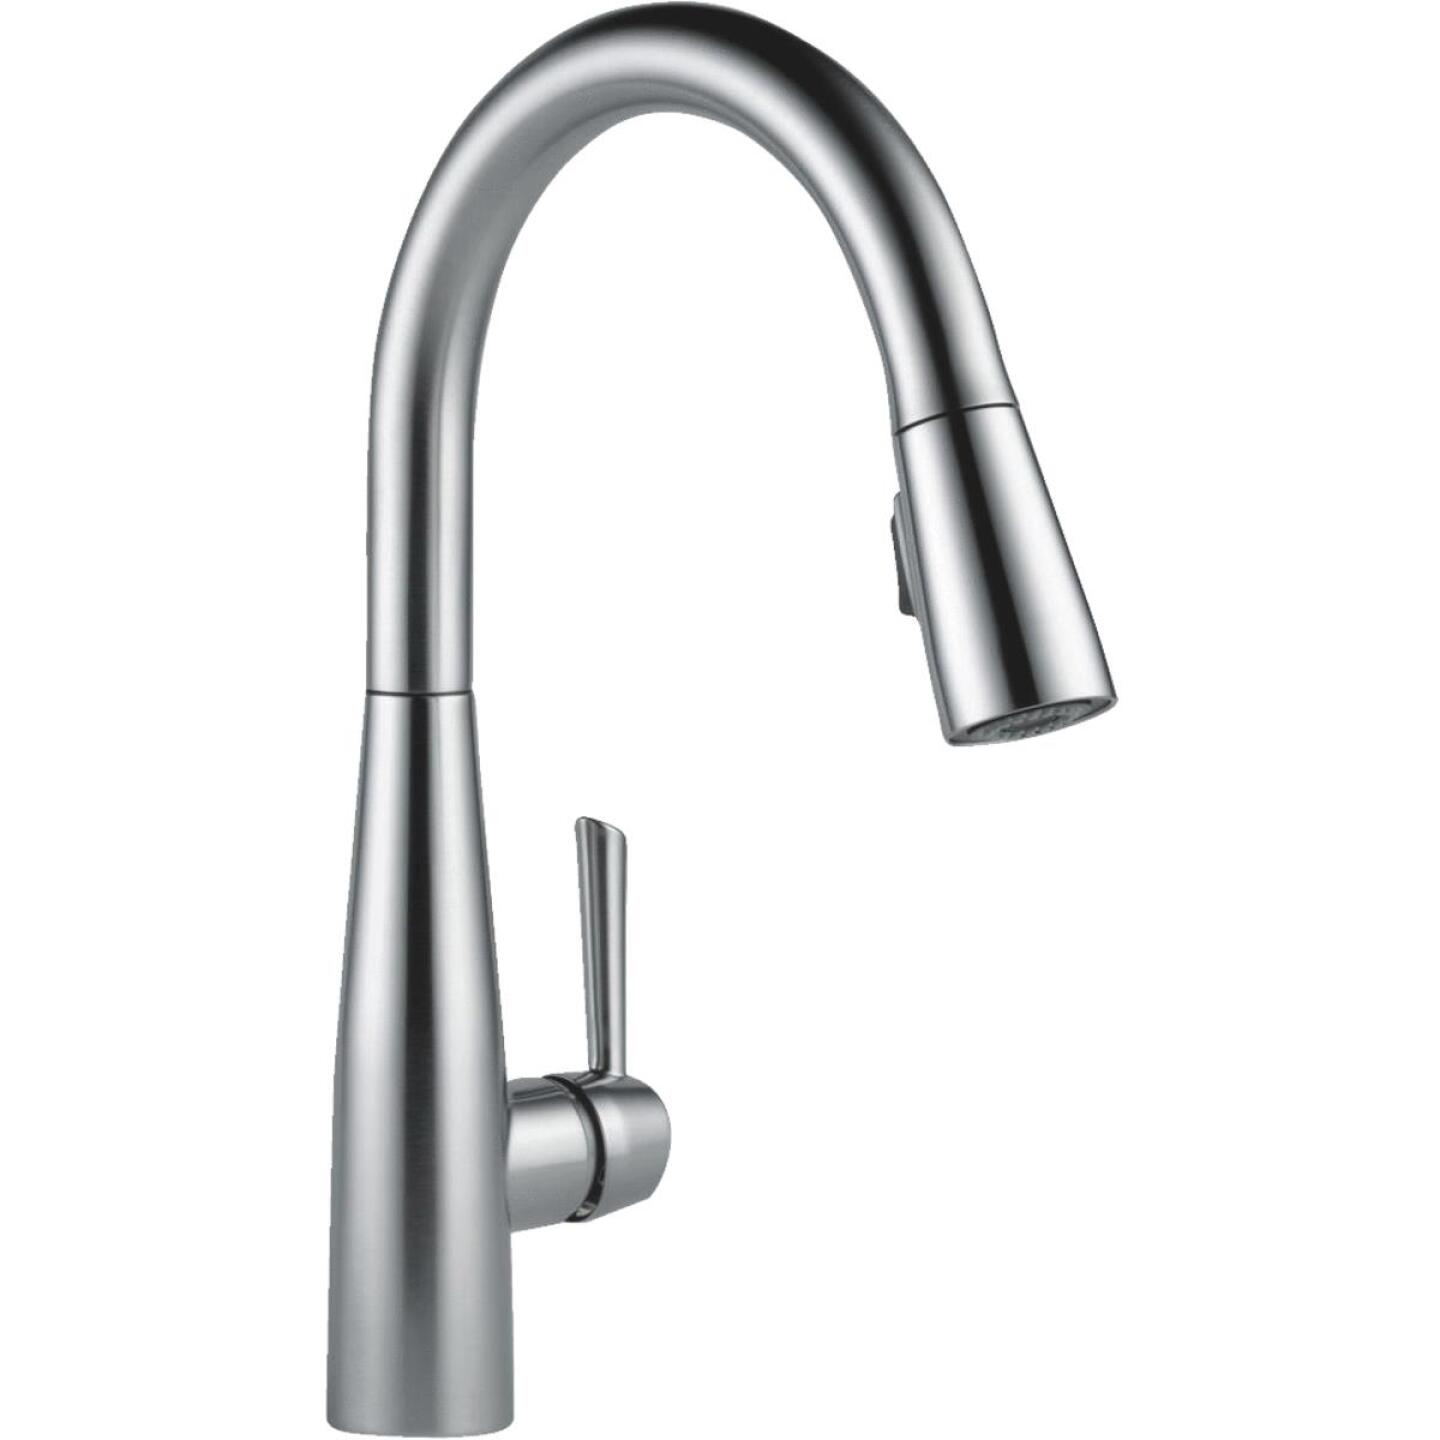 Delta Essa Single Handle Lever Kitchen Faucet with Pull-Down Spray, Stainless Image 5